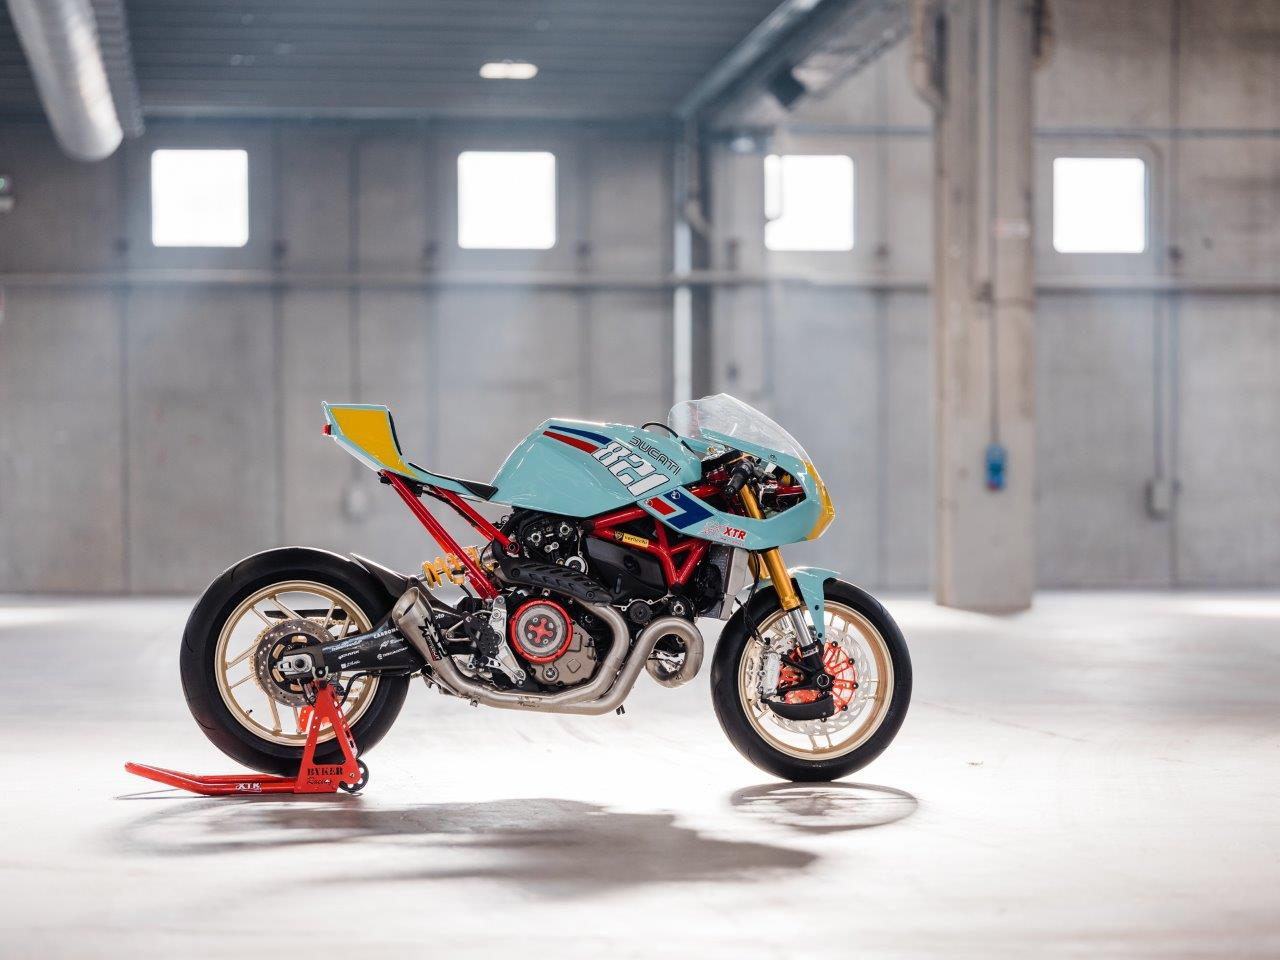 Ducati Race motorcycle from Spain's XTR Pepo